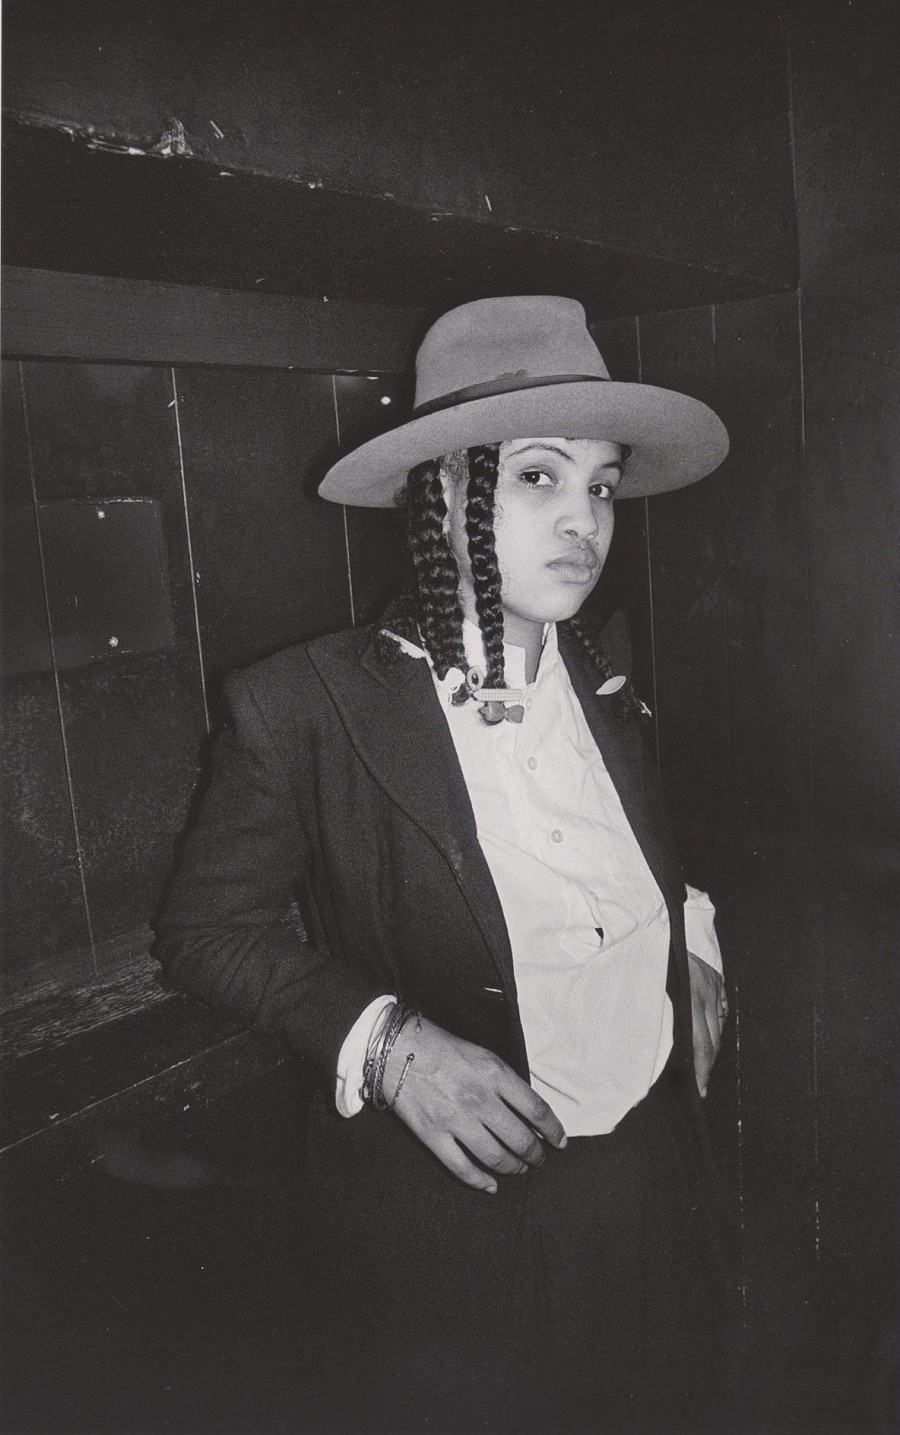 Derek Ridgers London Youth 78-87, Neneh Cherry, The Wag Club, 1983